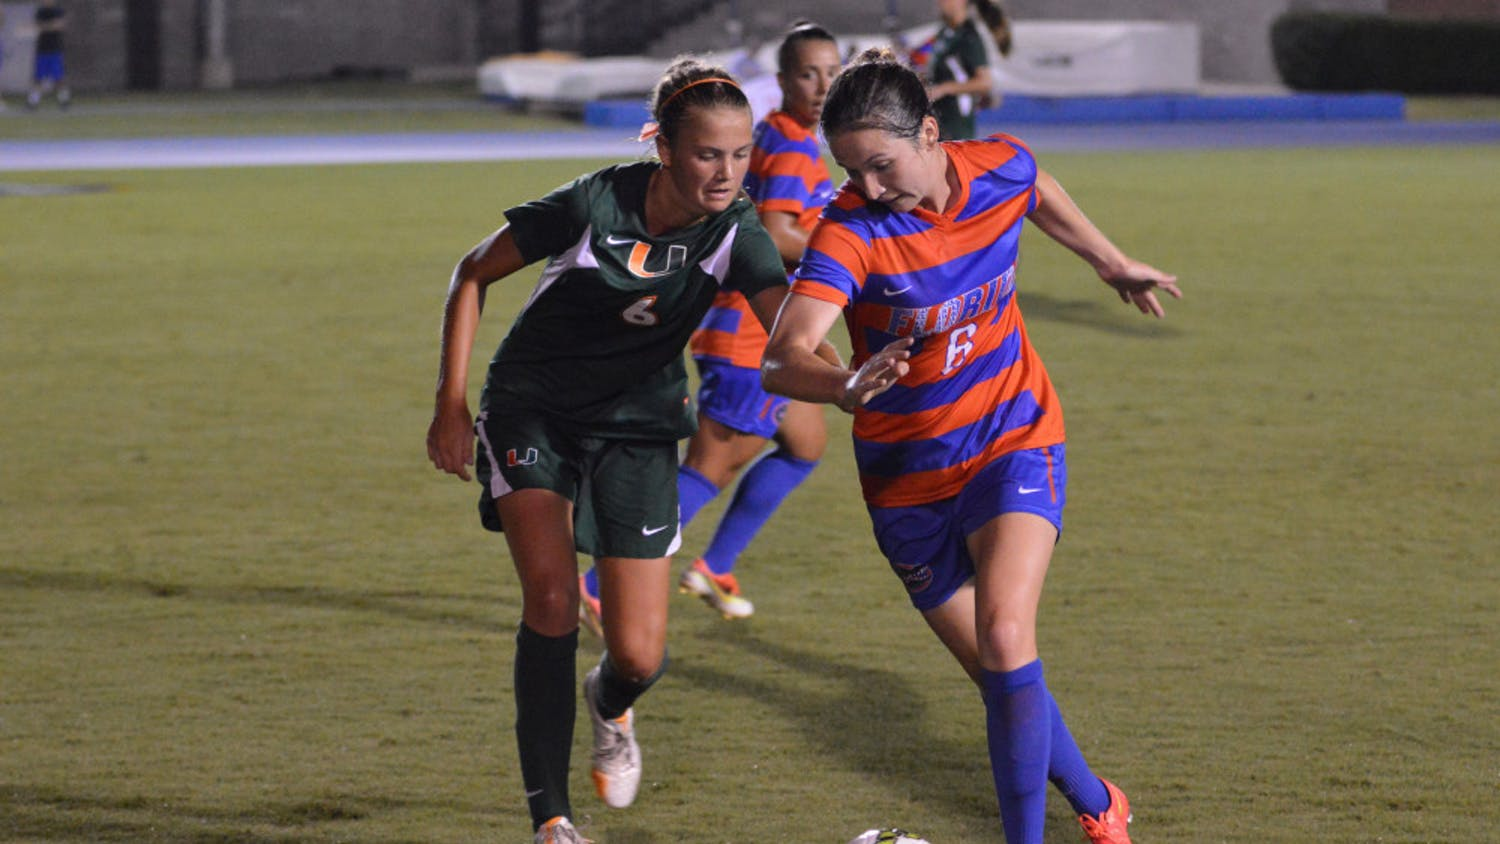 Junior midfielder Lauren Smith dribbles the ball during Florida's 3-0 win against Miami on August 22, 2014, at James G. Pressly Stadium.